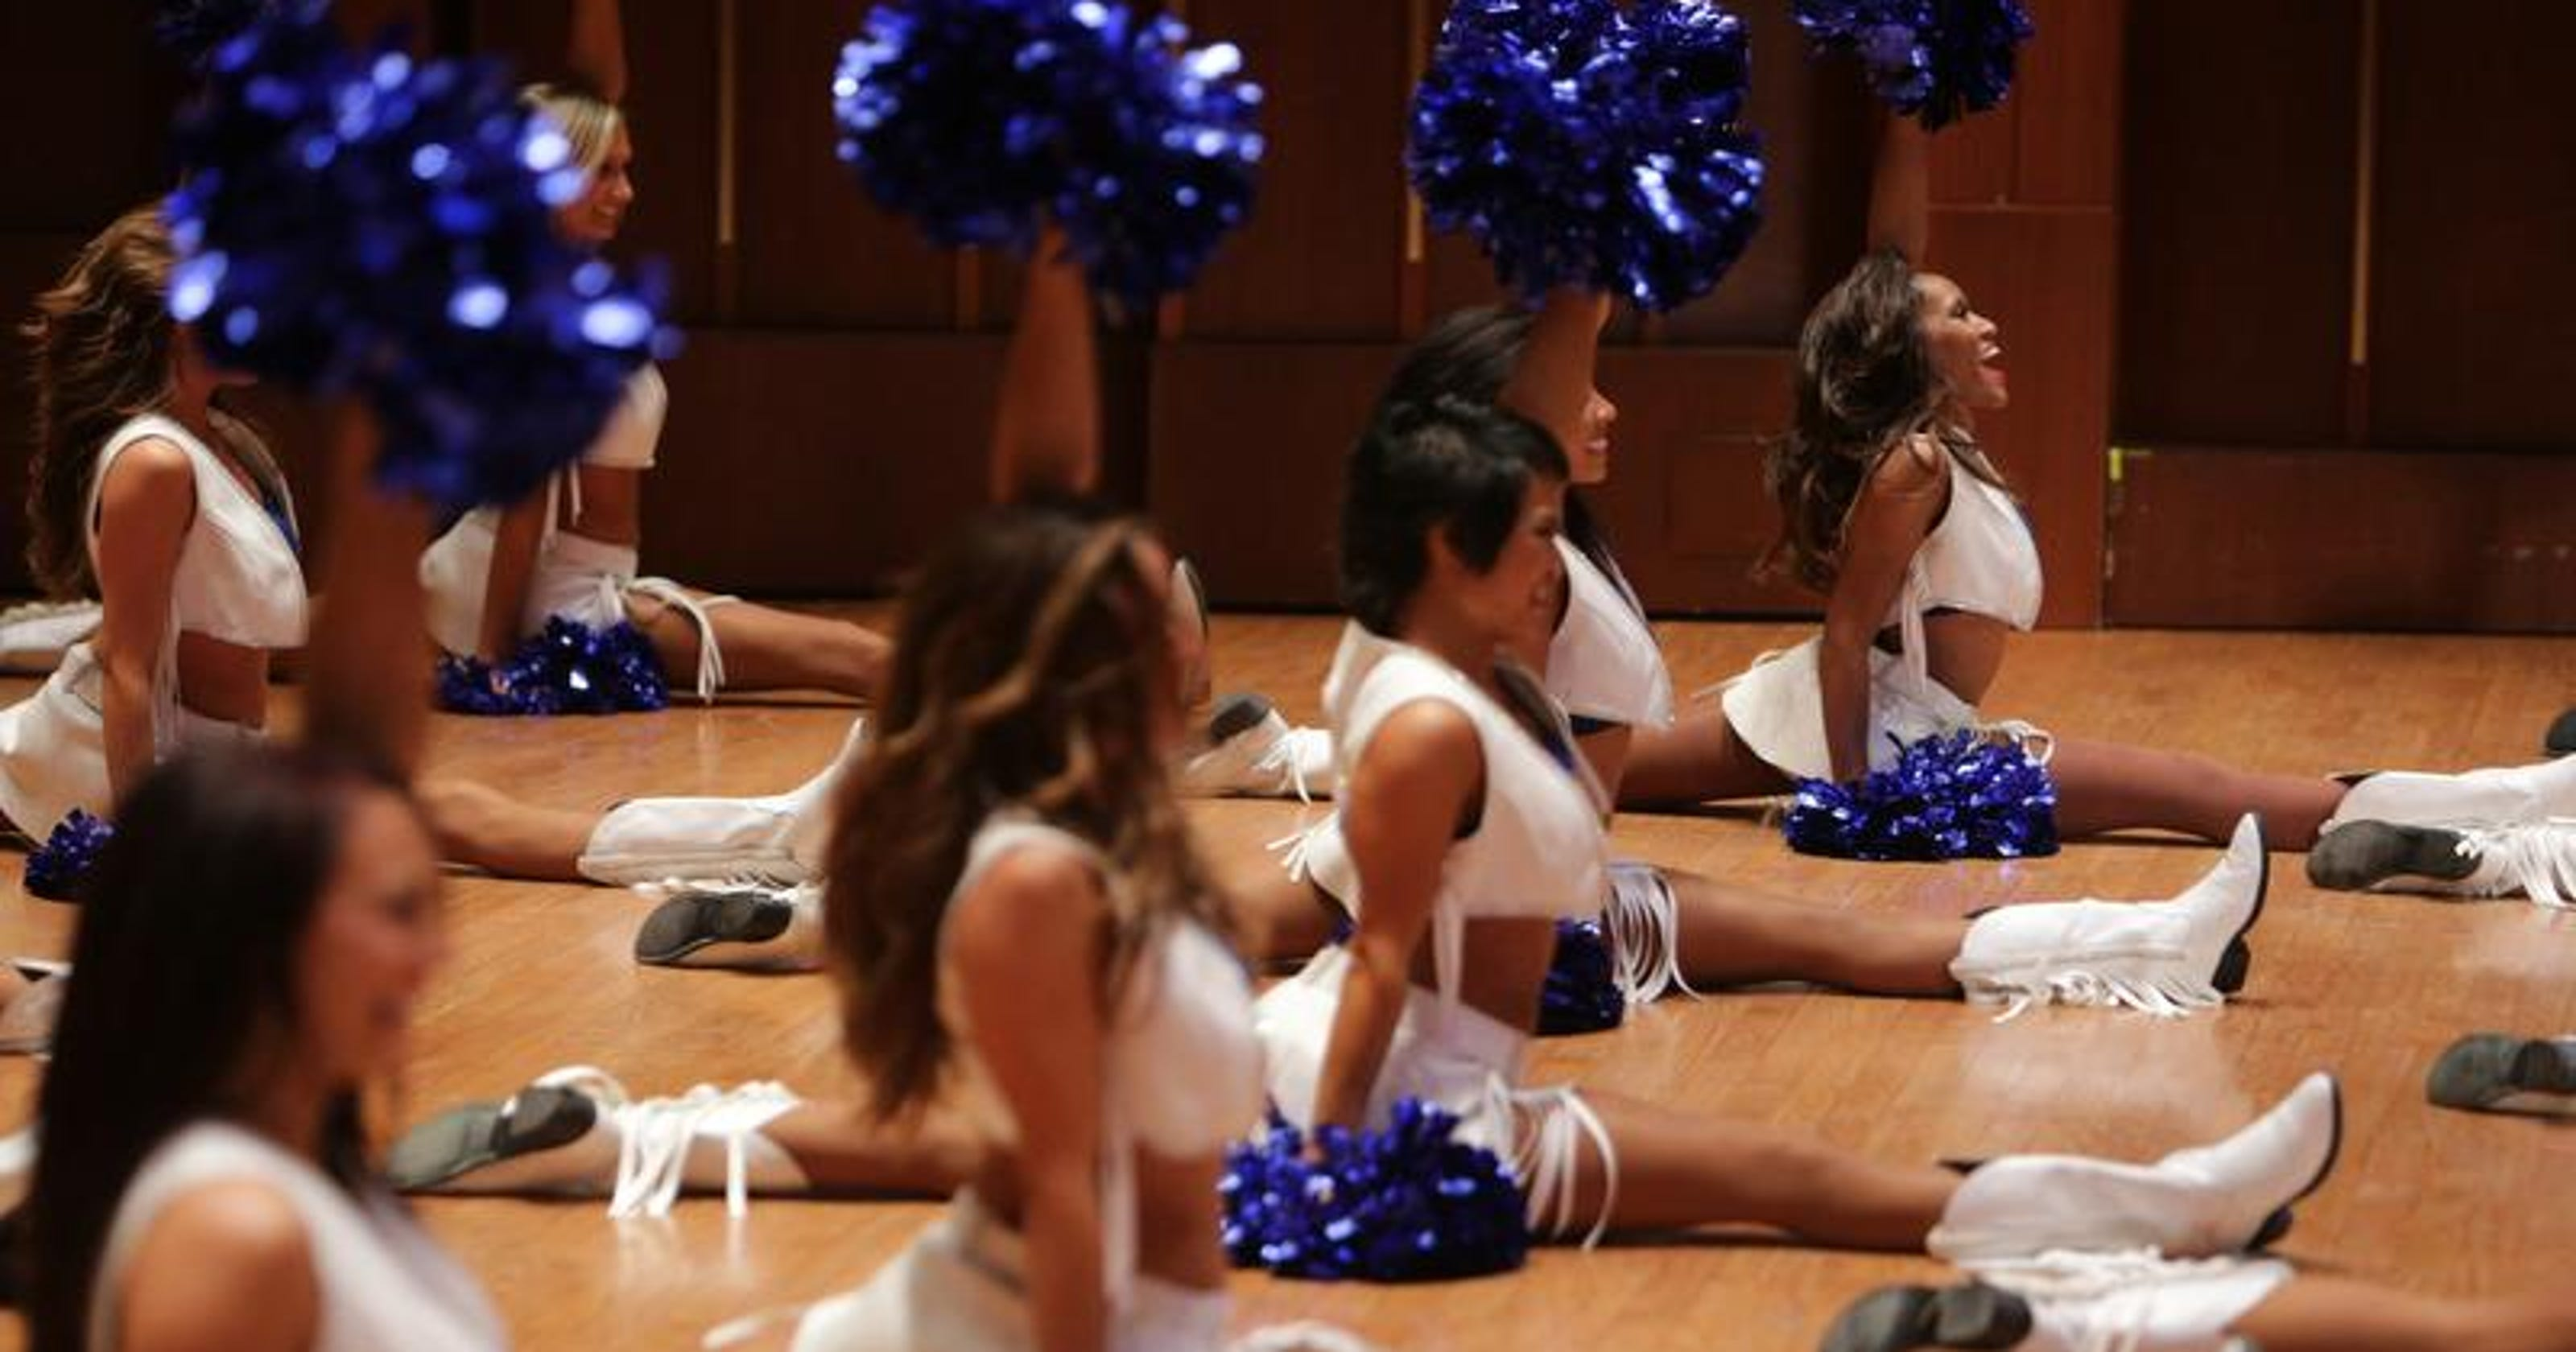 bcaec67c Watch live as 2014 Colts cheerleaders are chosen